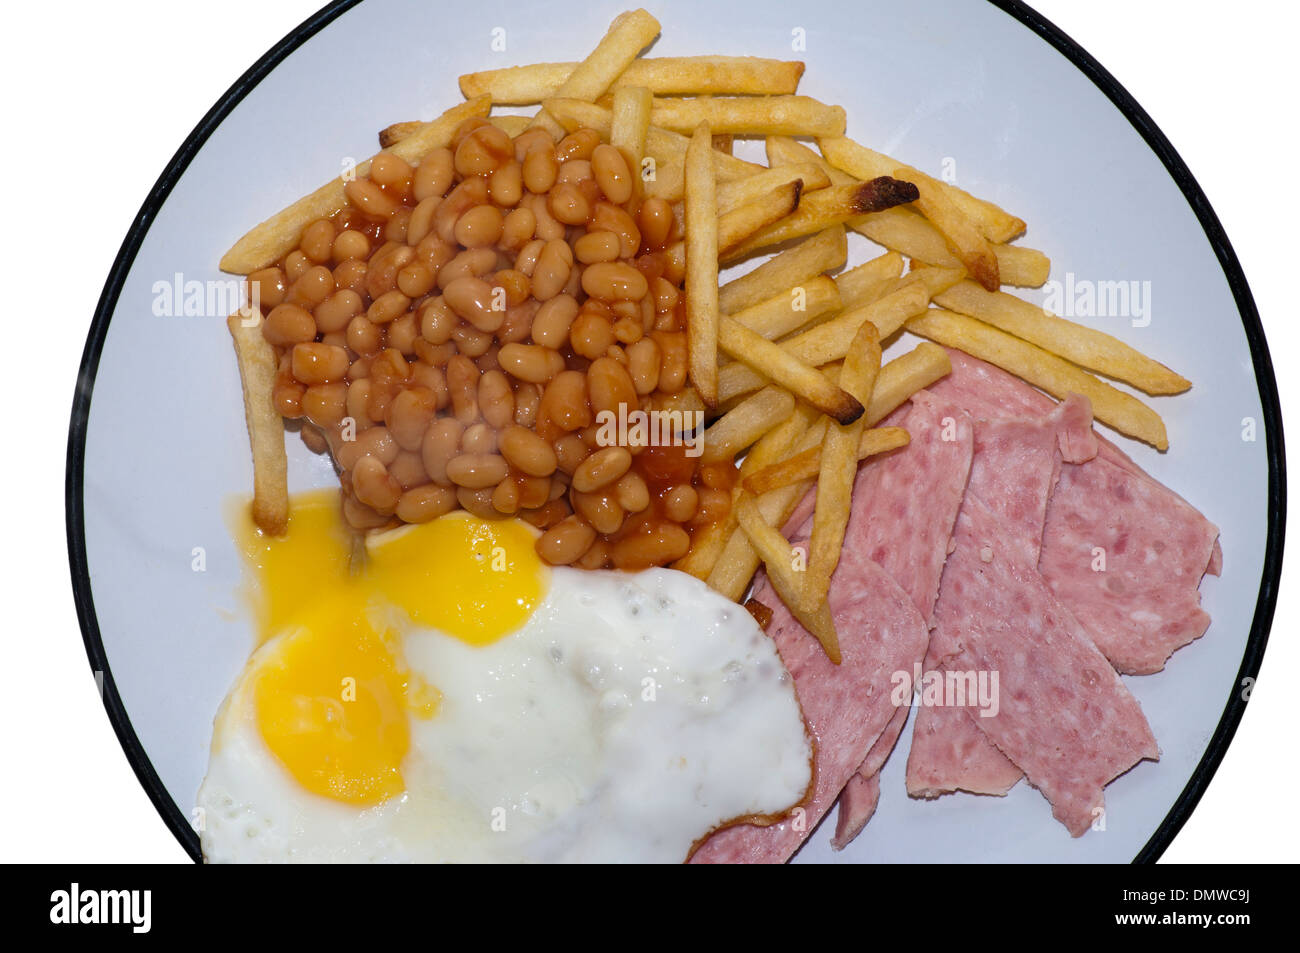 French Fries baked Beans Spam and Fried Egg Meal on a Plate - Stock Image